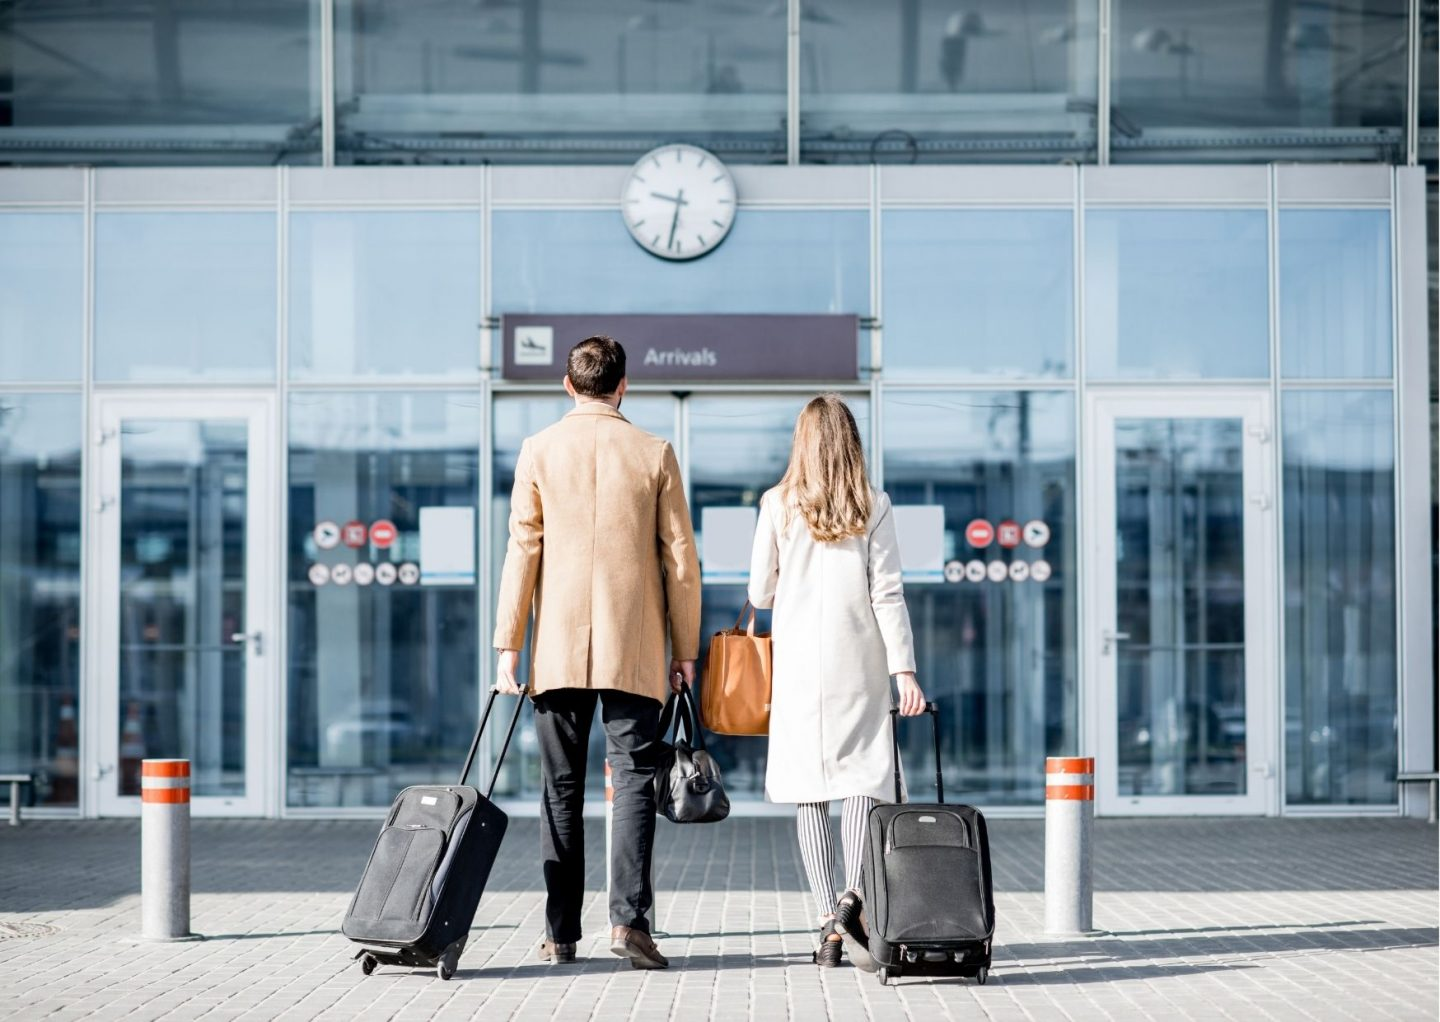 airport and cruise ship transfers